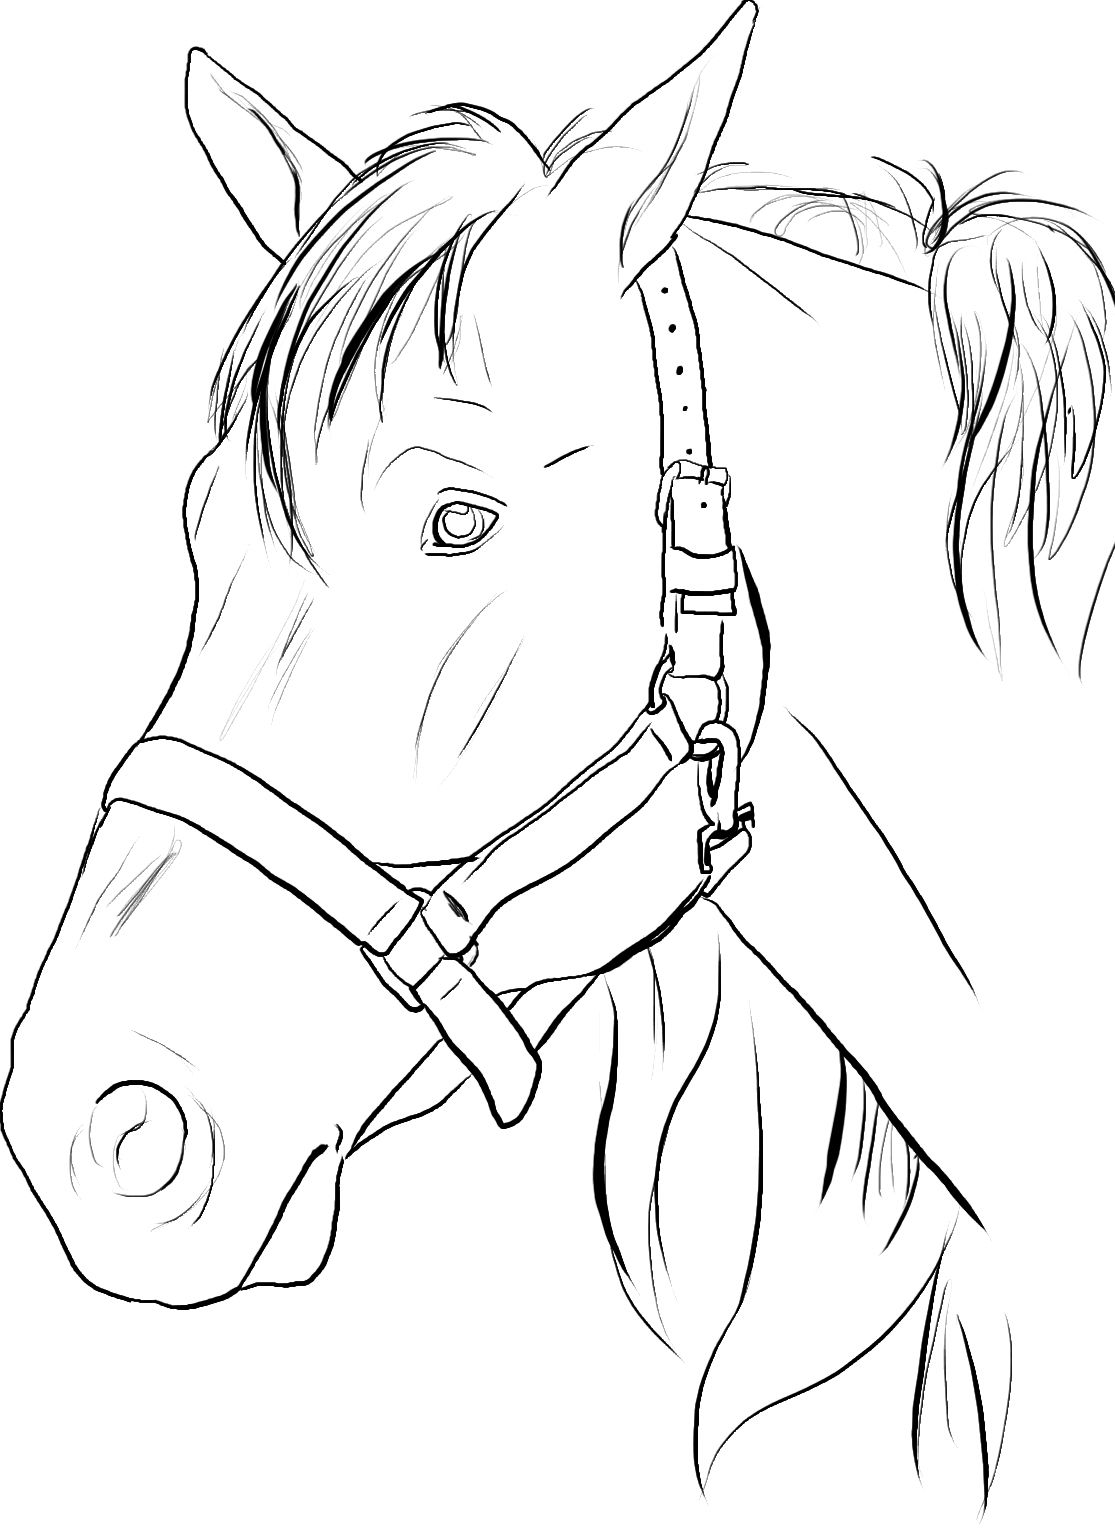 Christmas Coloring Pages Horse With Inspiring Pictures To Color And Print